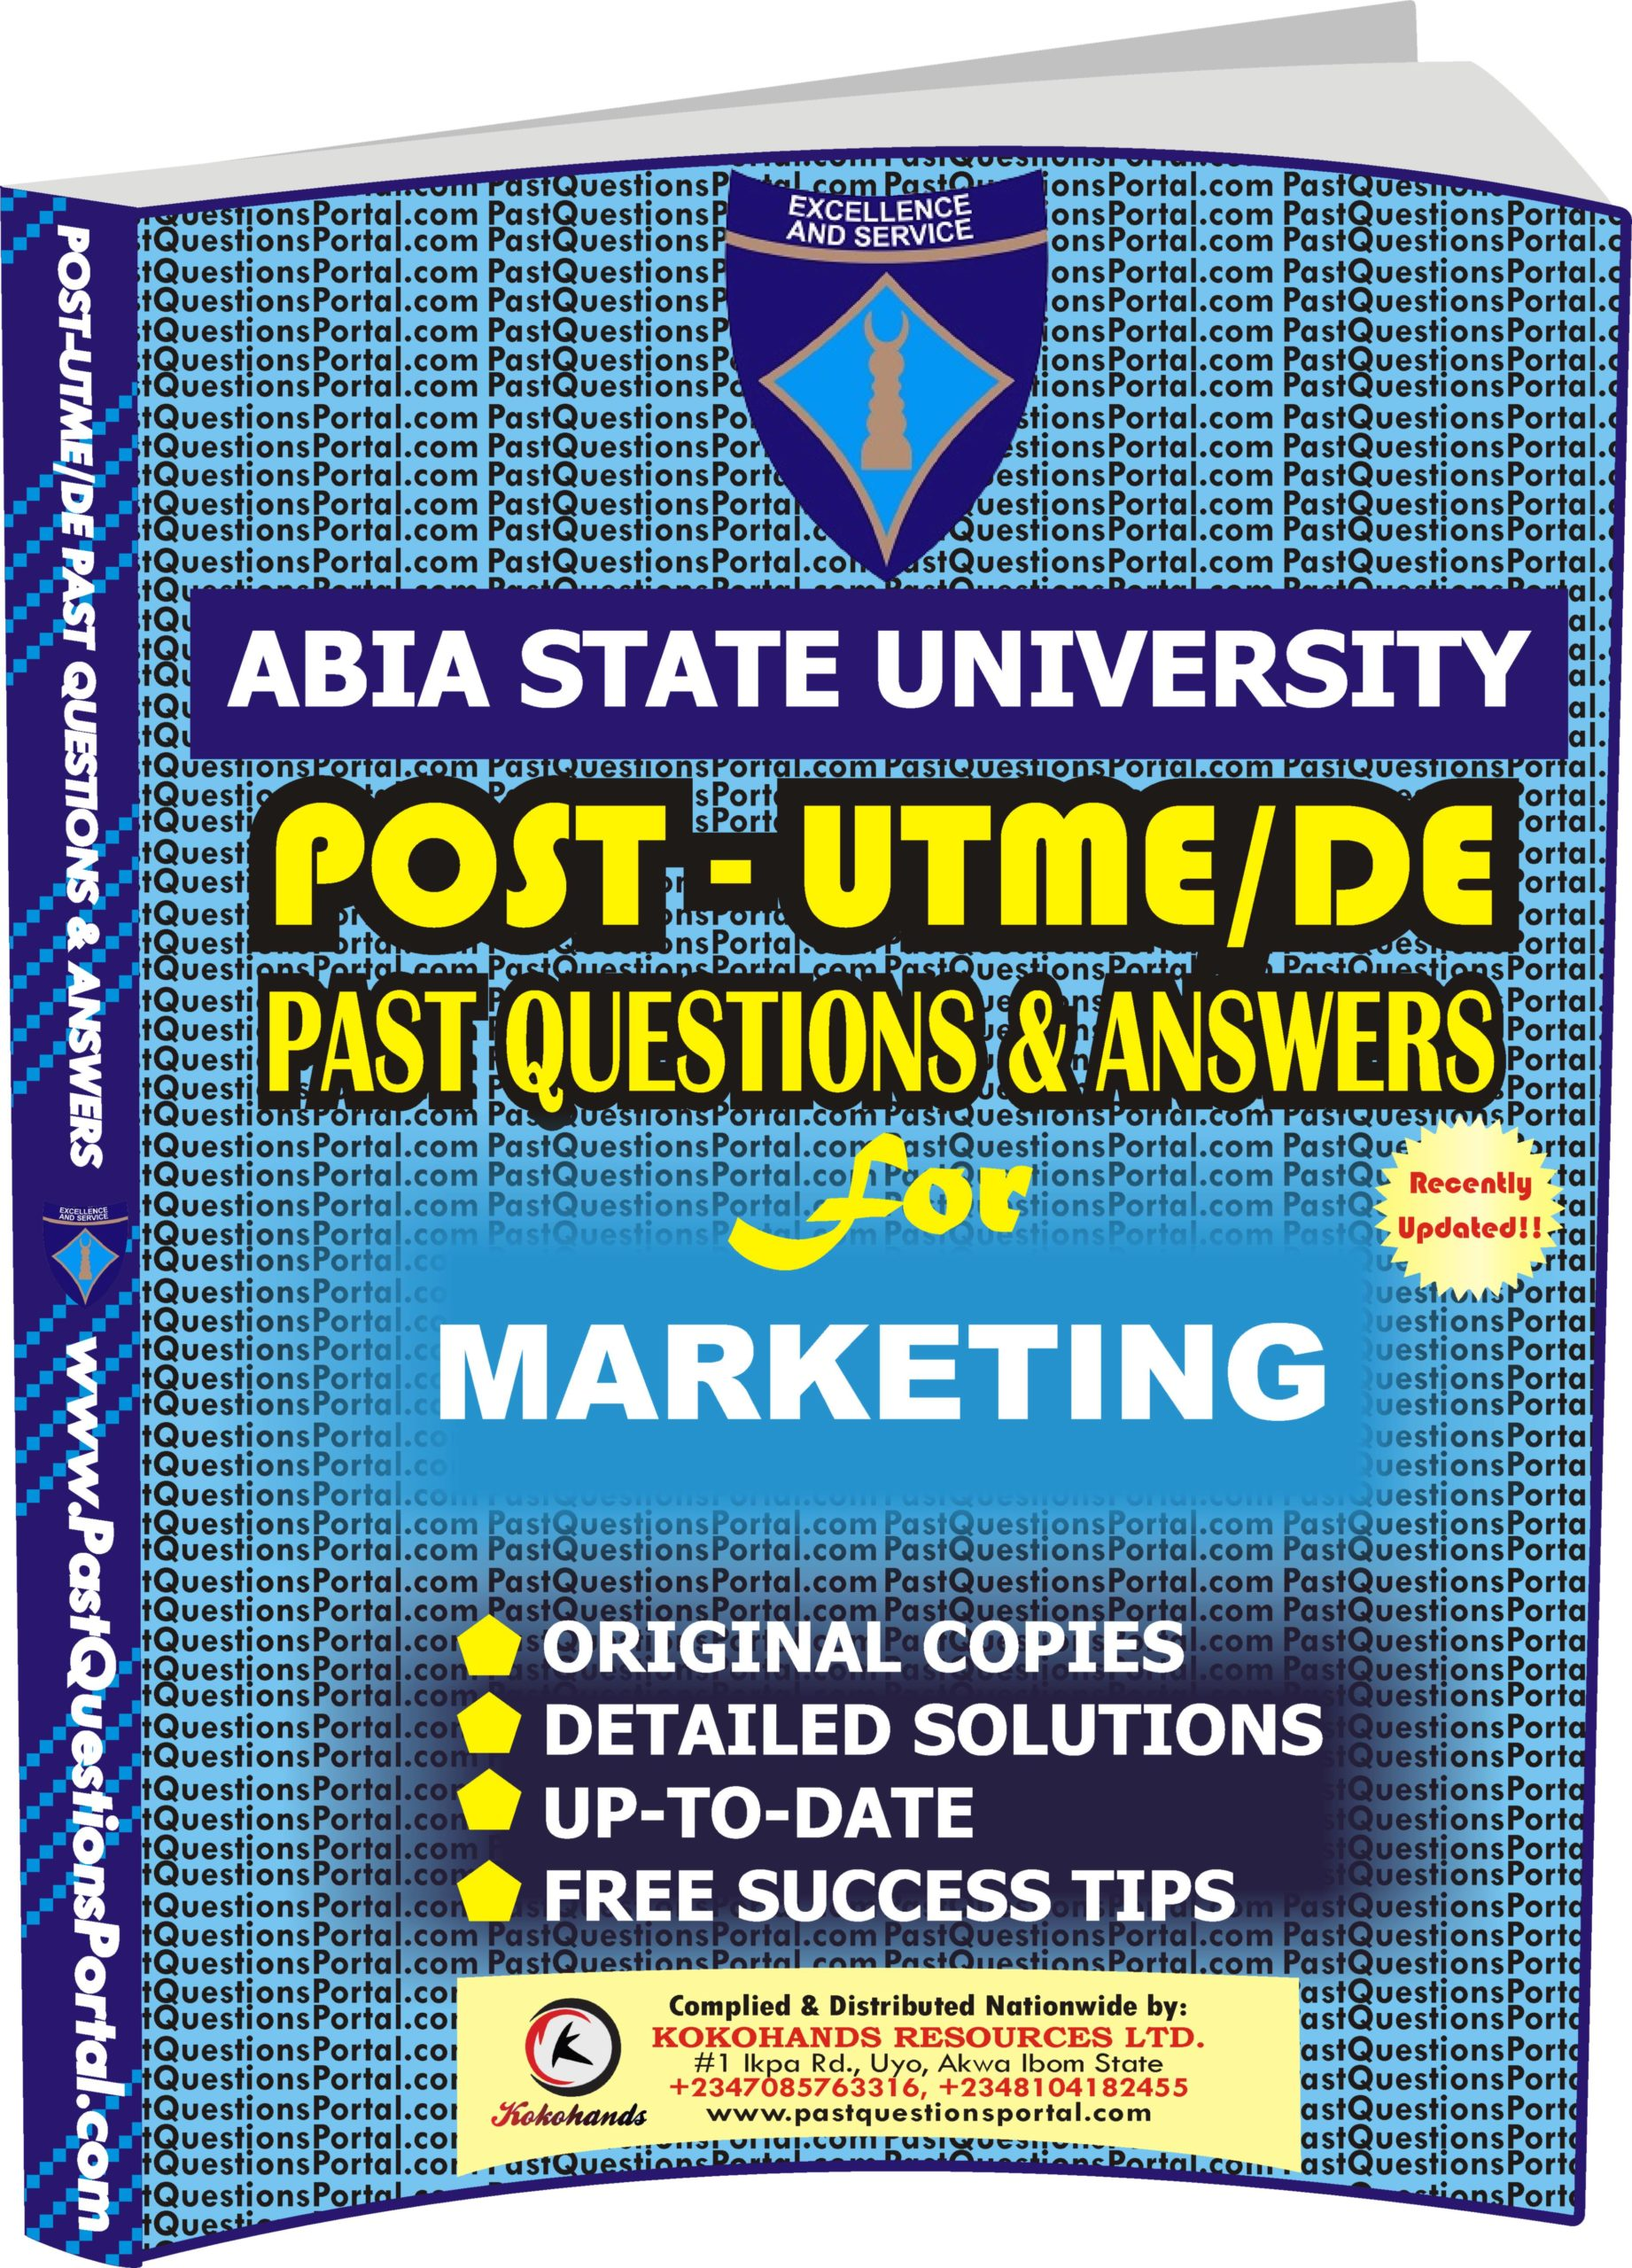 ABSU Post UTME Past Questions for MARKETING